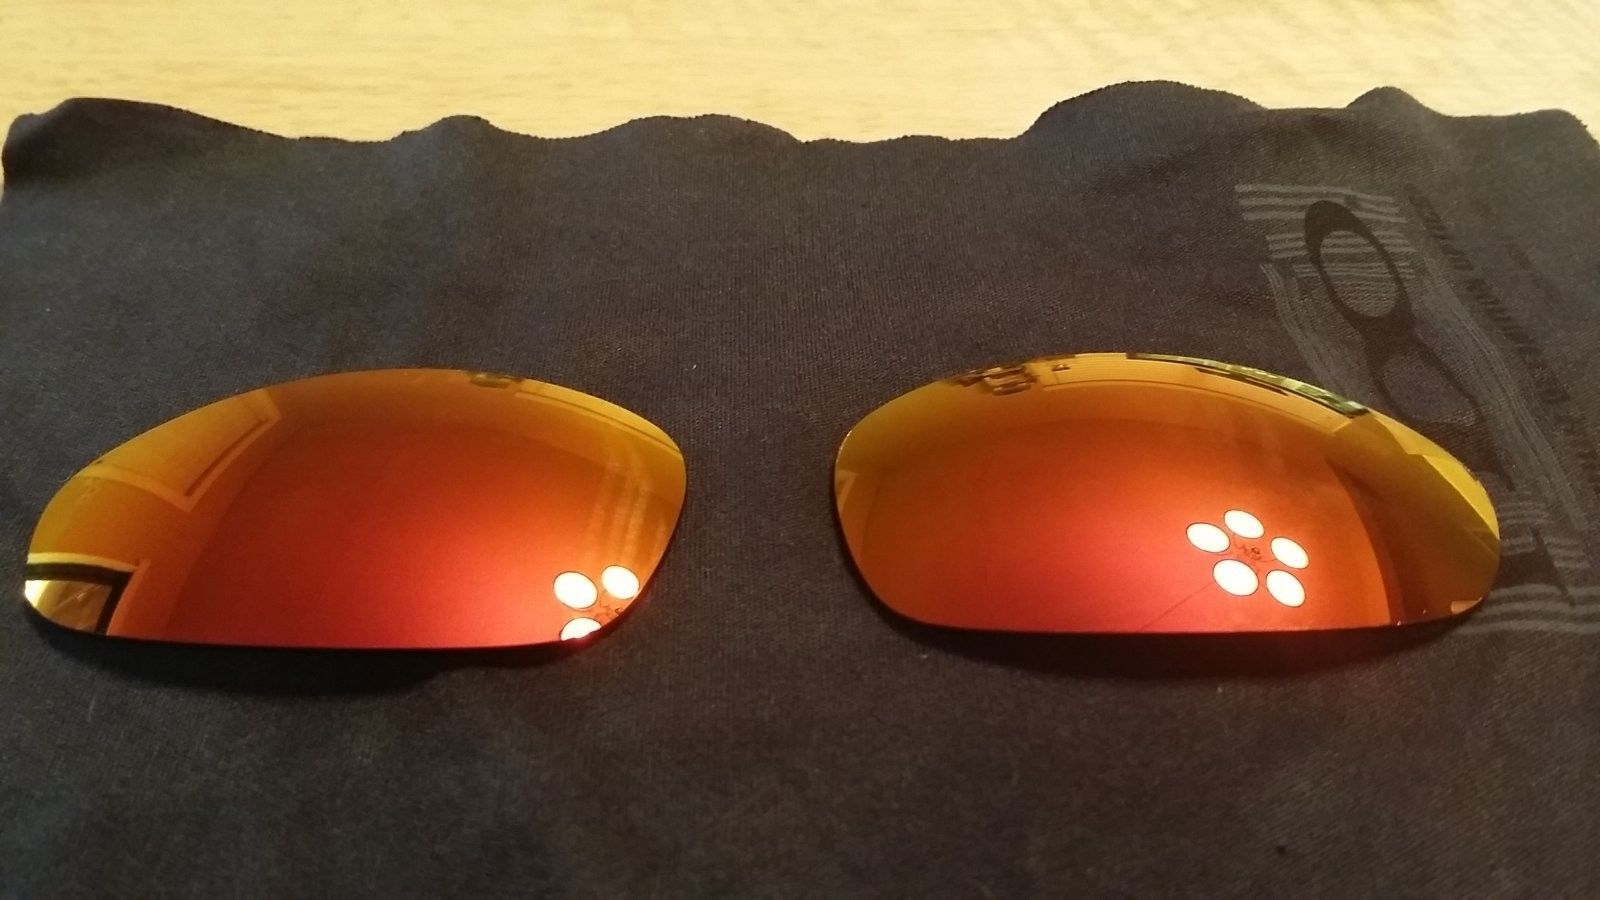 Are These Authentic? - 20140823_172531.jpg